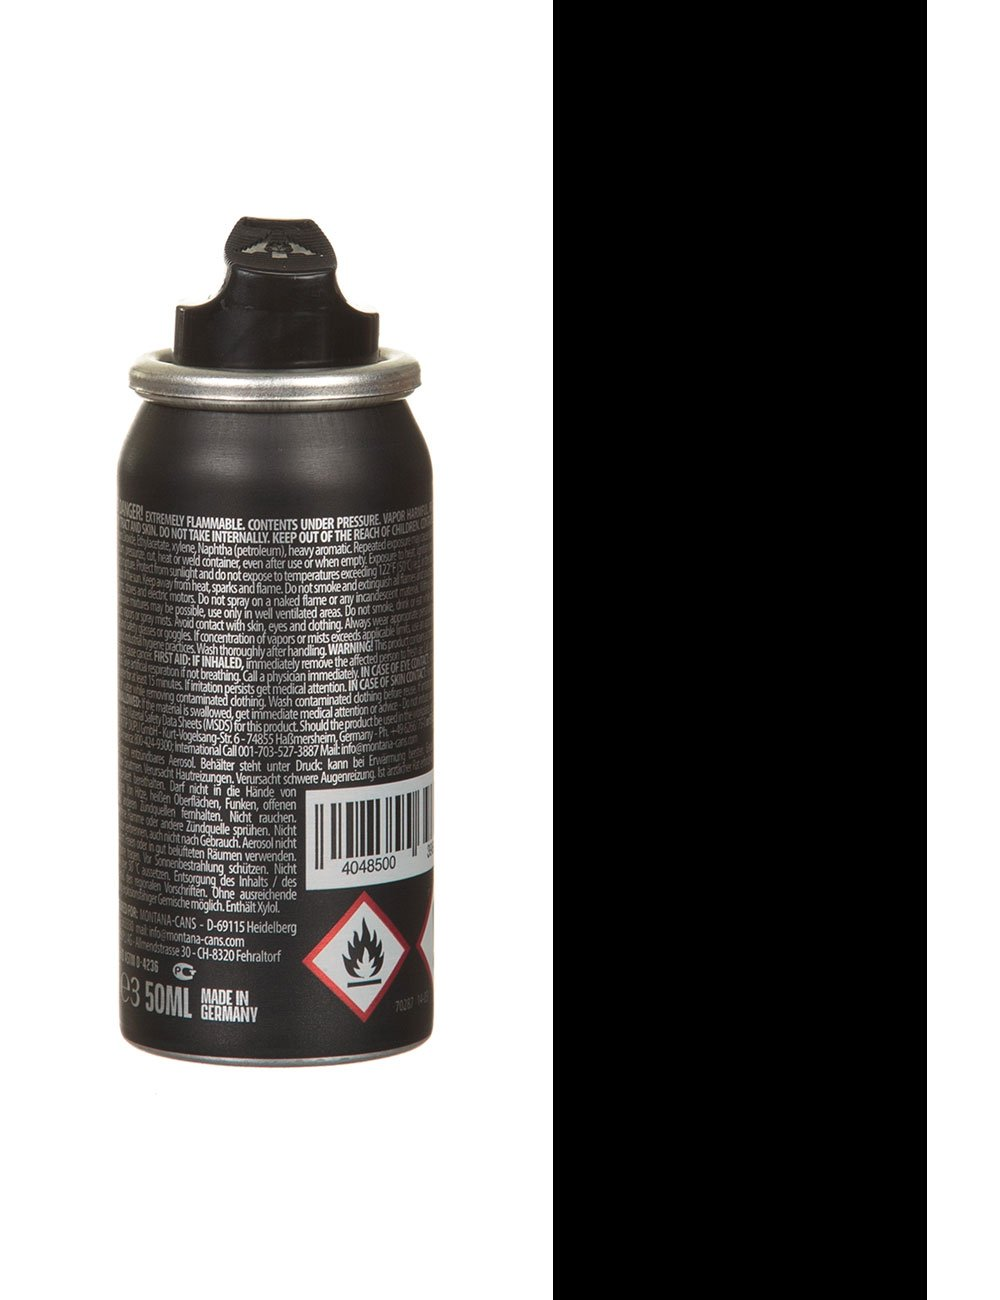 Montana black black spray paint 50ml spray paint supplies from iconsume uk Spray paint supplies